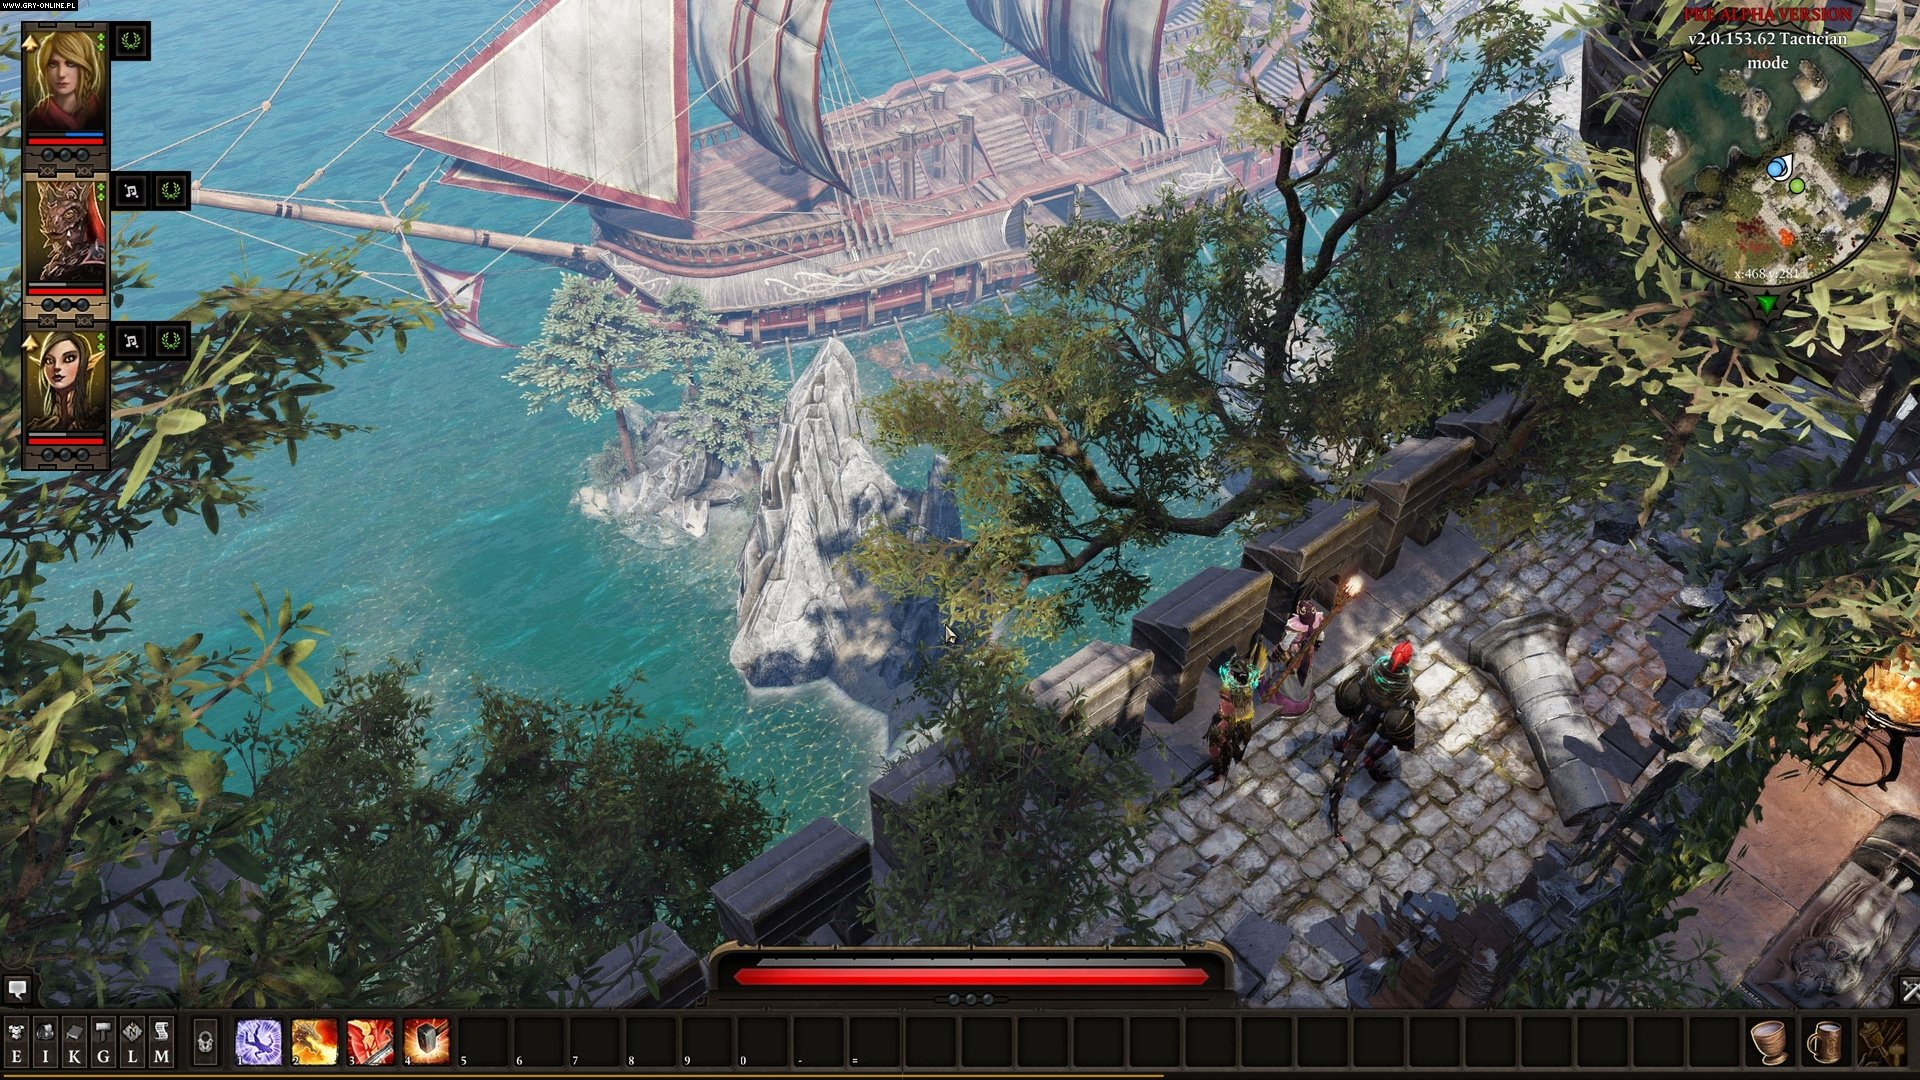 Divinity: Original Sin II - Definitive Edition PC, PS4, XONE Games Image 281/304, Larian Studios